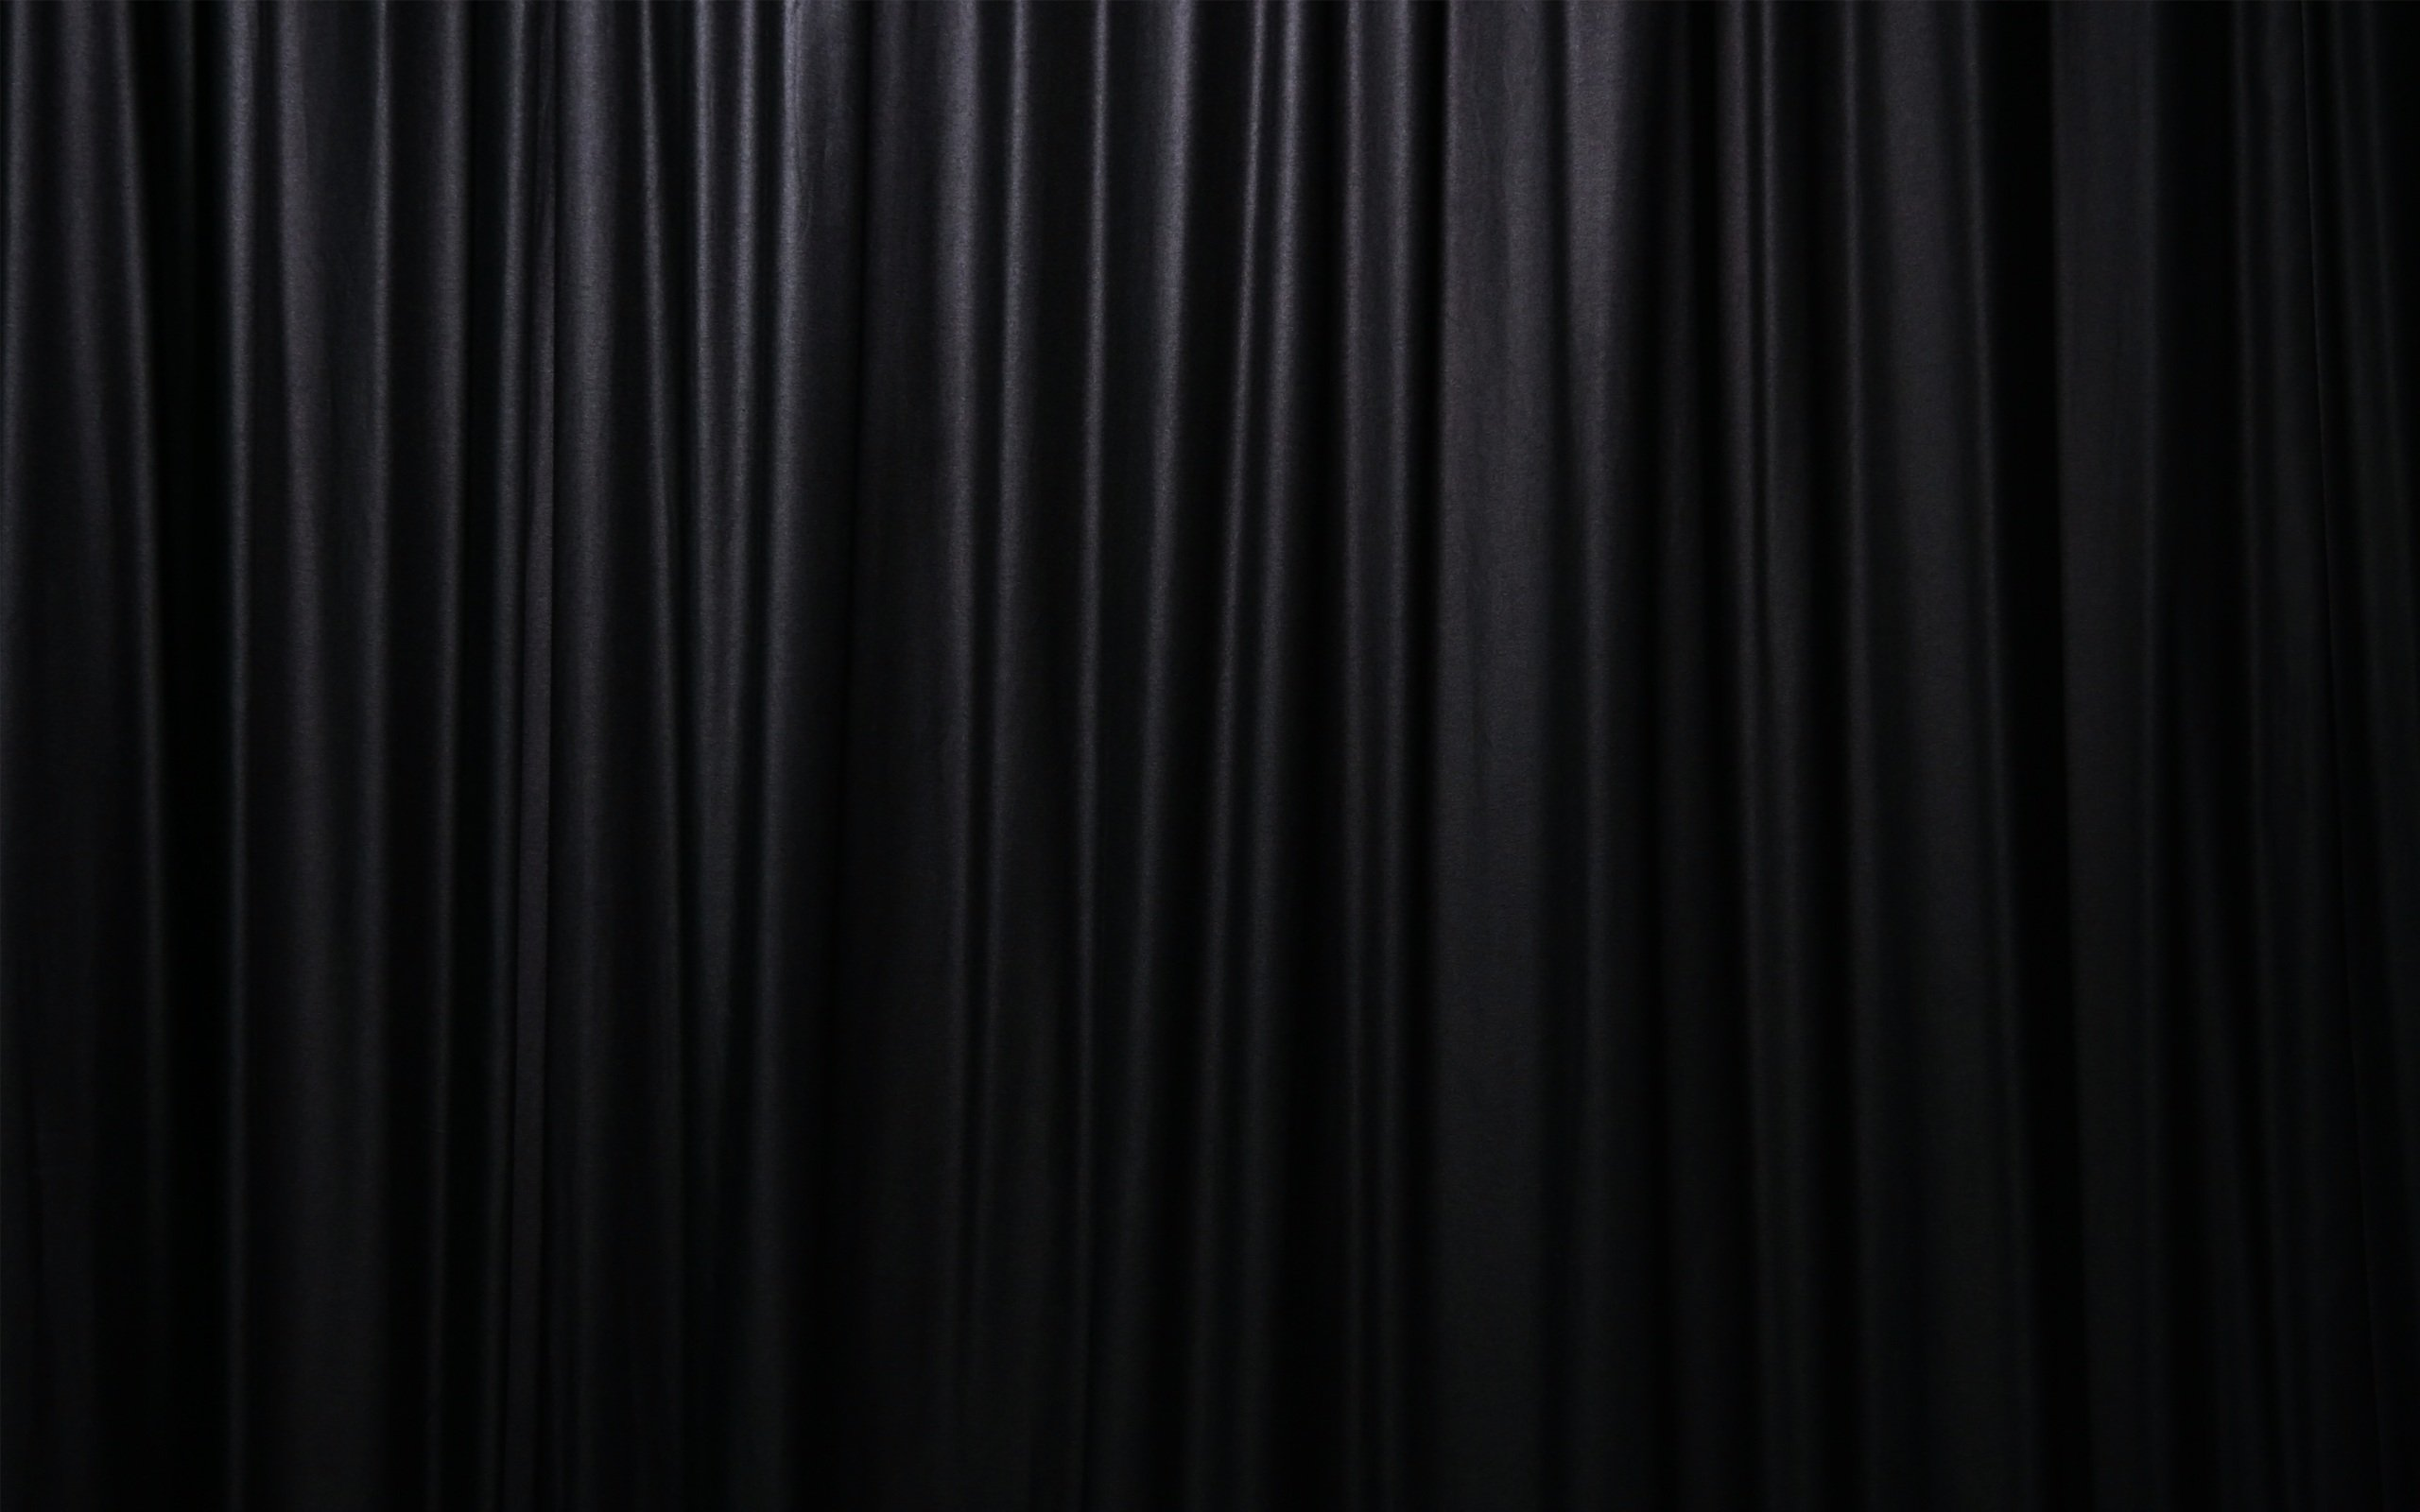 Red curtains stage - Curtain Blind Black Background Wallpaper Forwallpaper Com